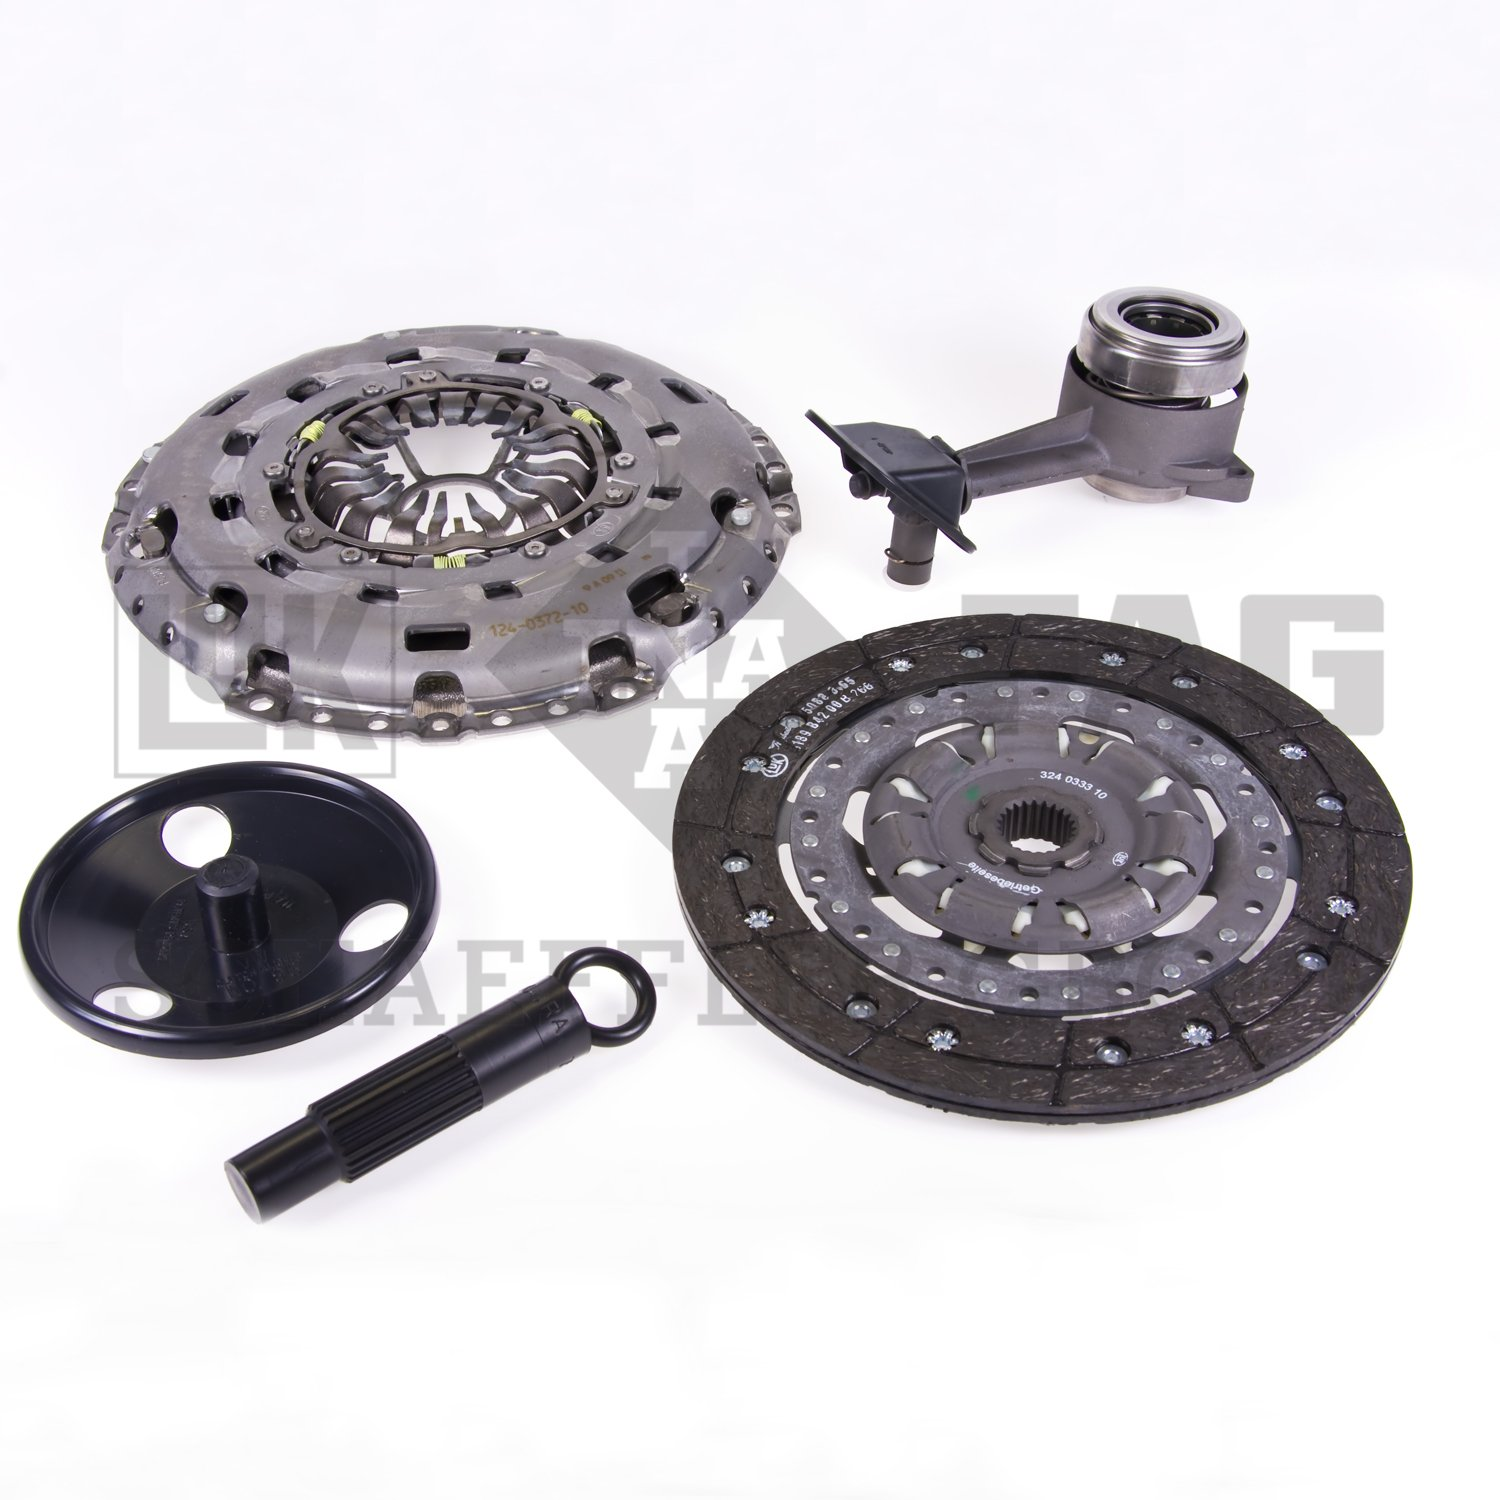 LuK 07196 Kit de embrague, para Ford: Focus 03 - 11: Amazon.es: Coche y moto